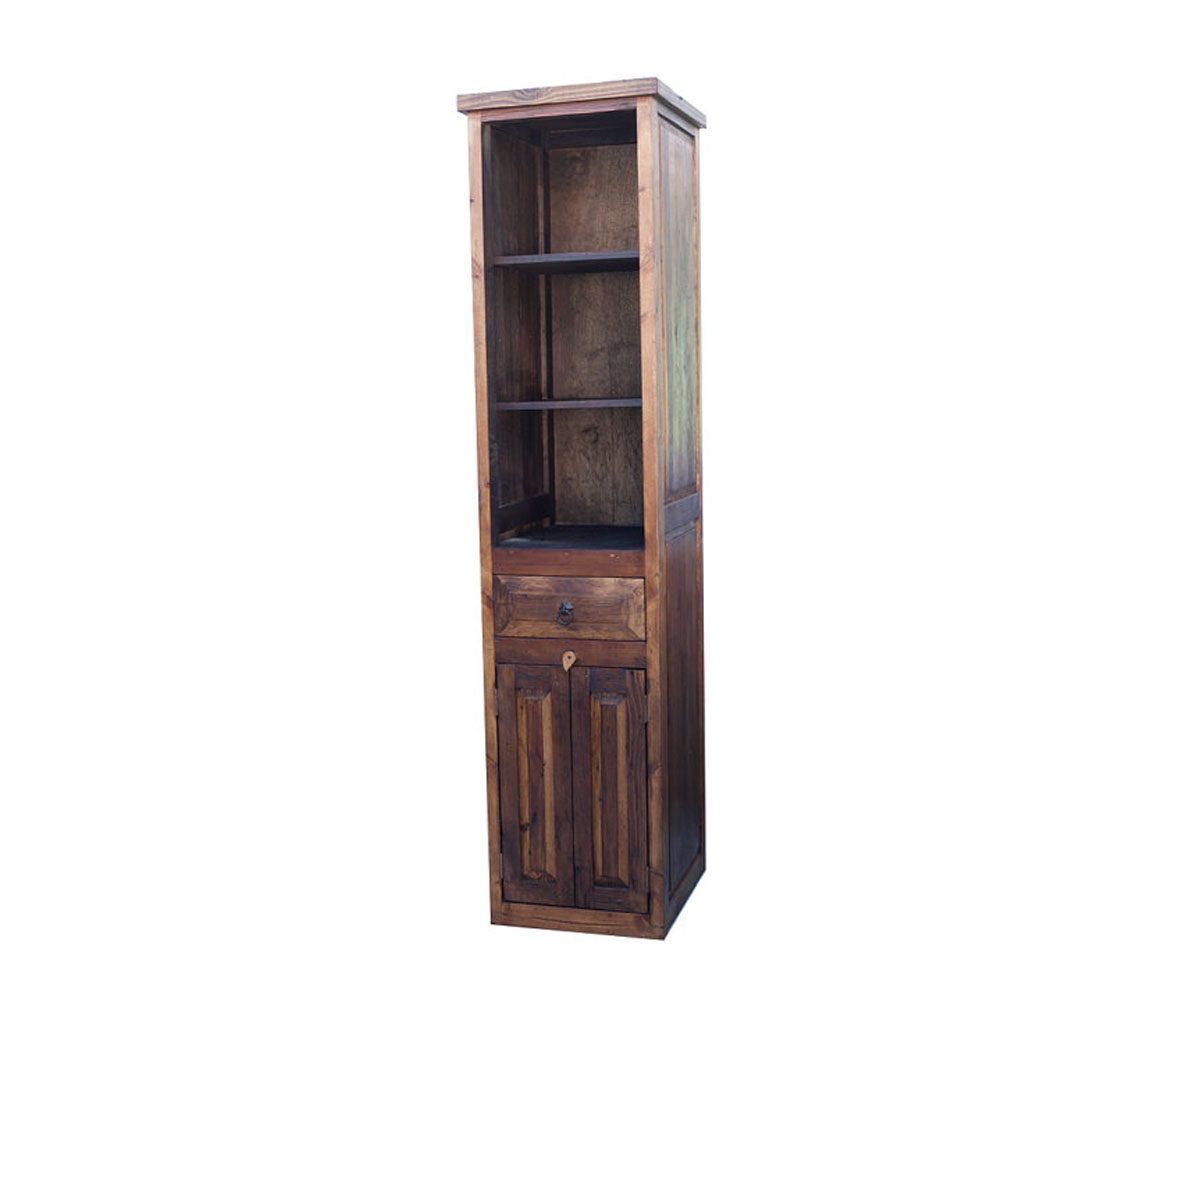 Purchase Rustic Linen Cabinet Online Made From Barn Wood